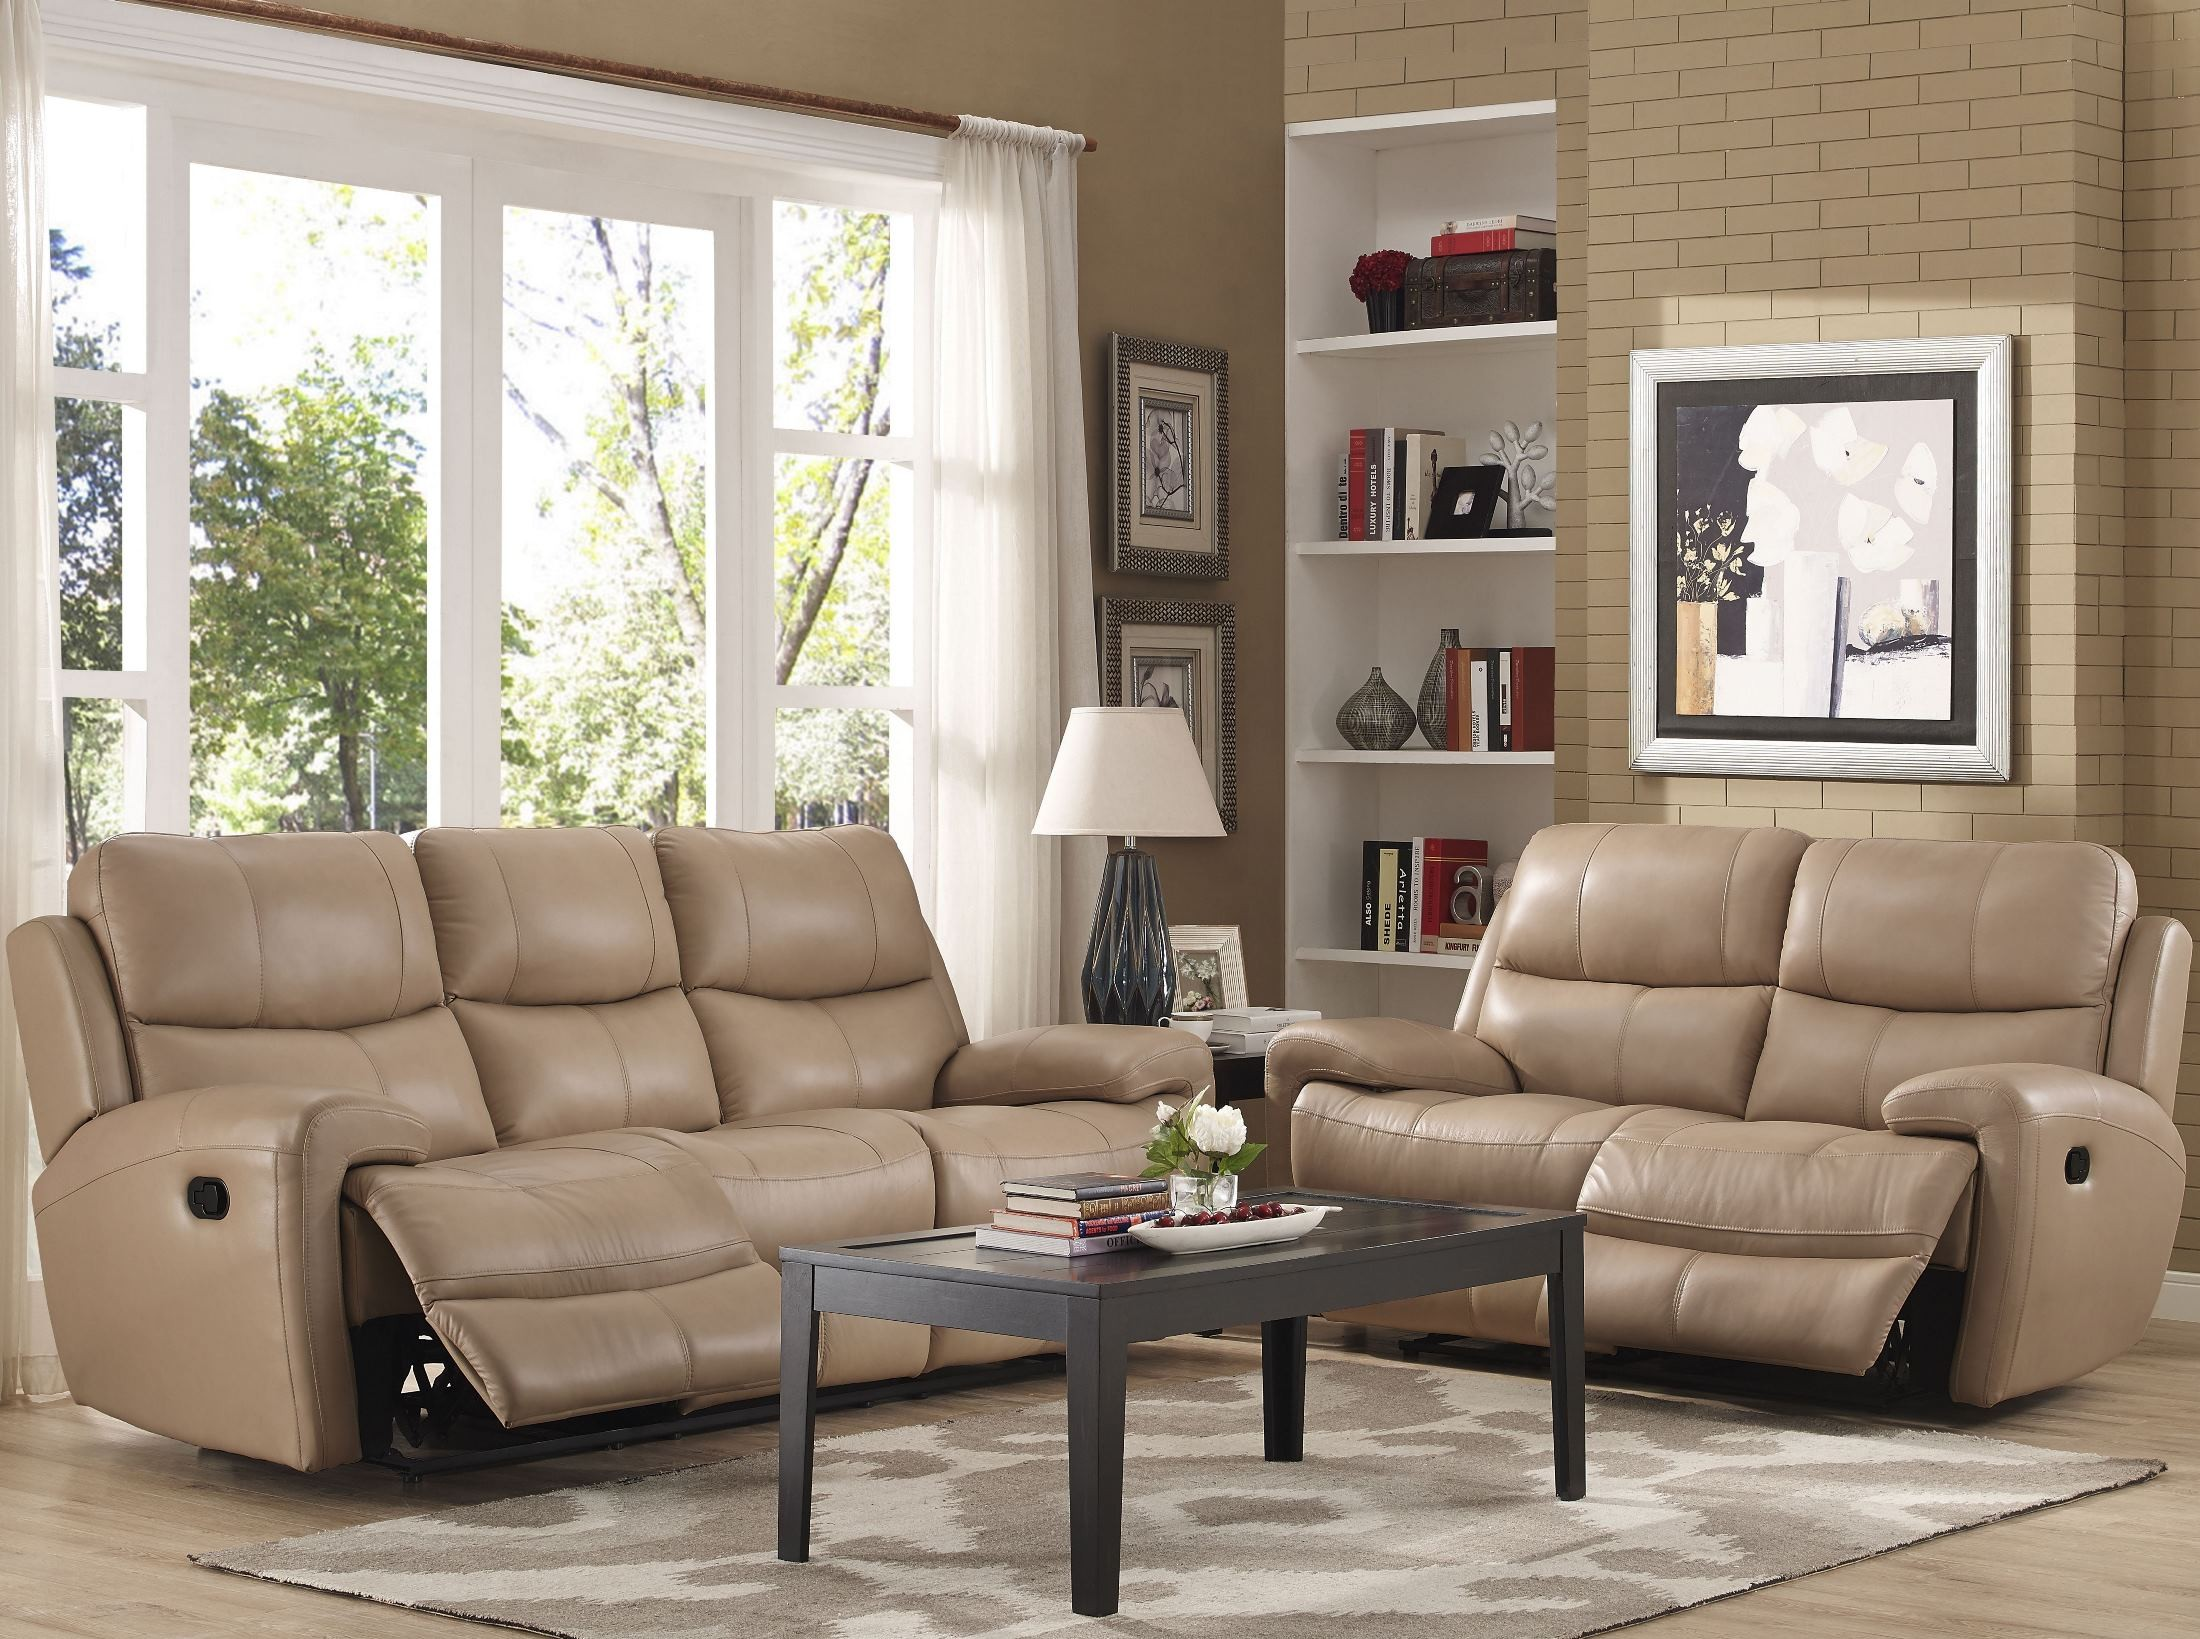 fabulous taupe living room furniture | Boulevard Taupe Power Dual Reclining Living Room Set from ...